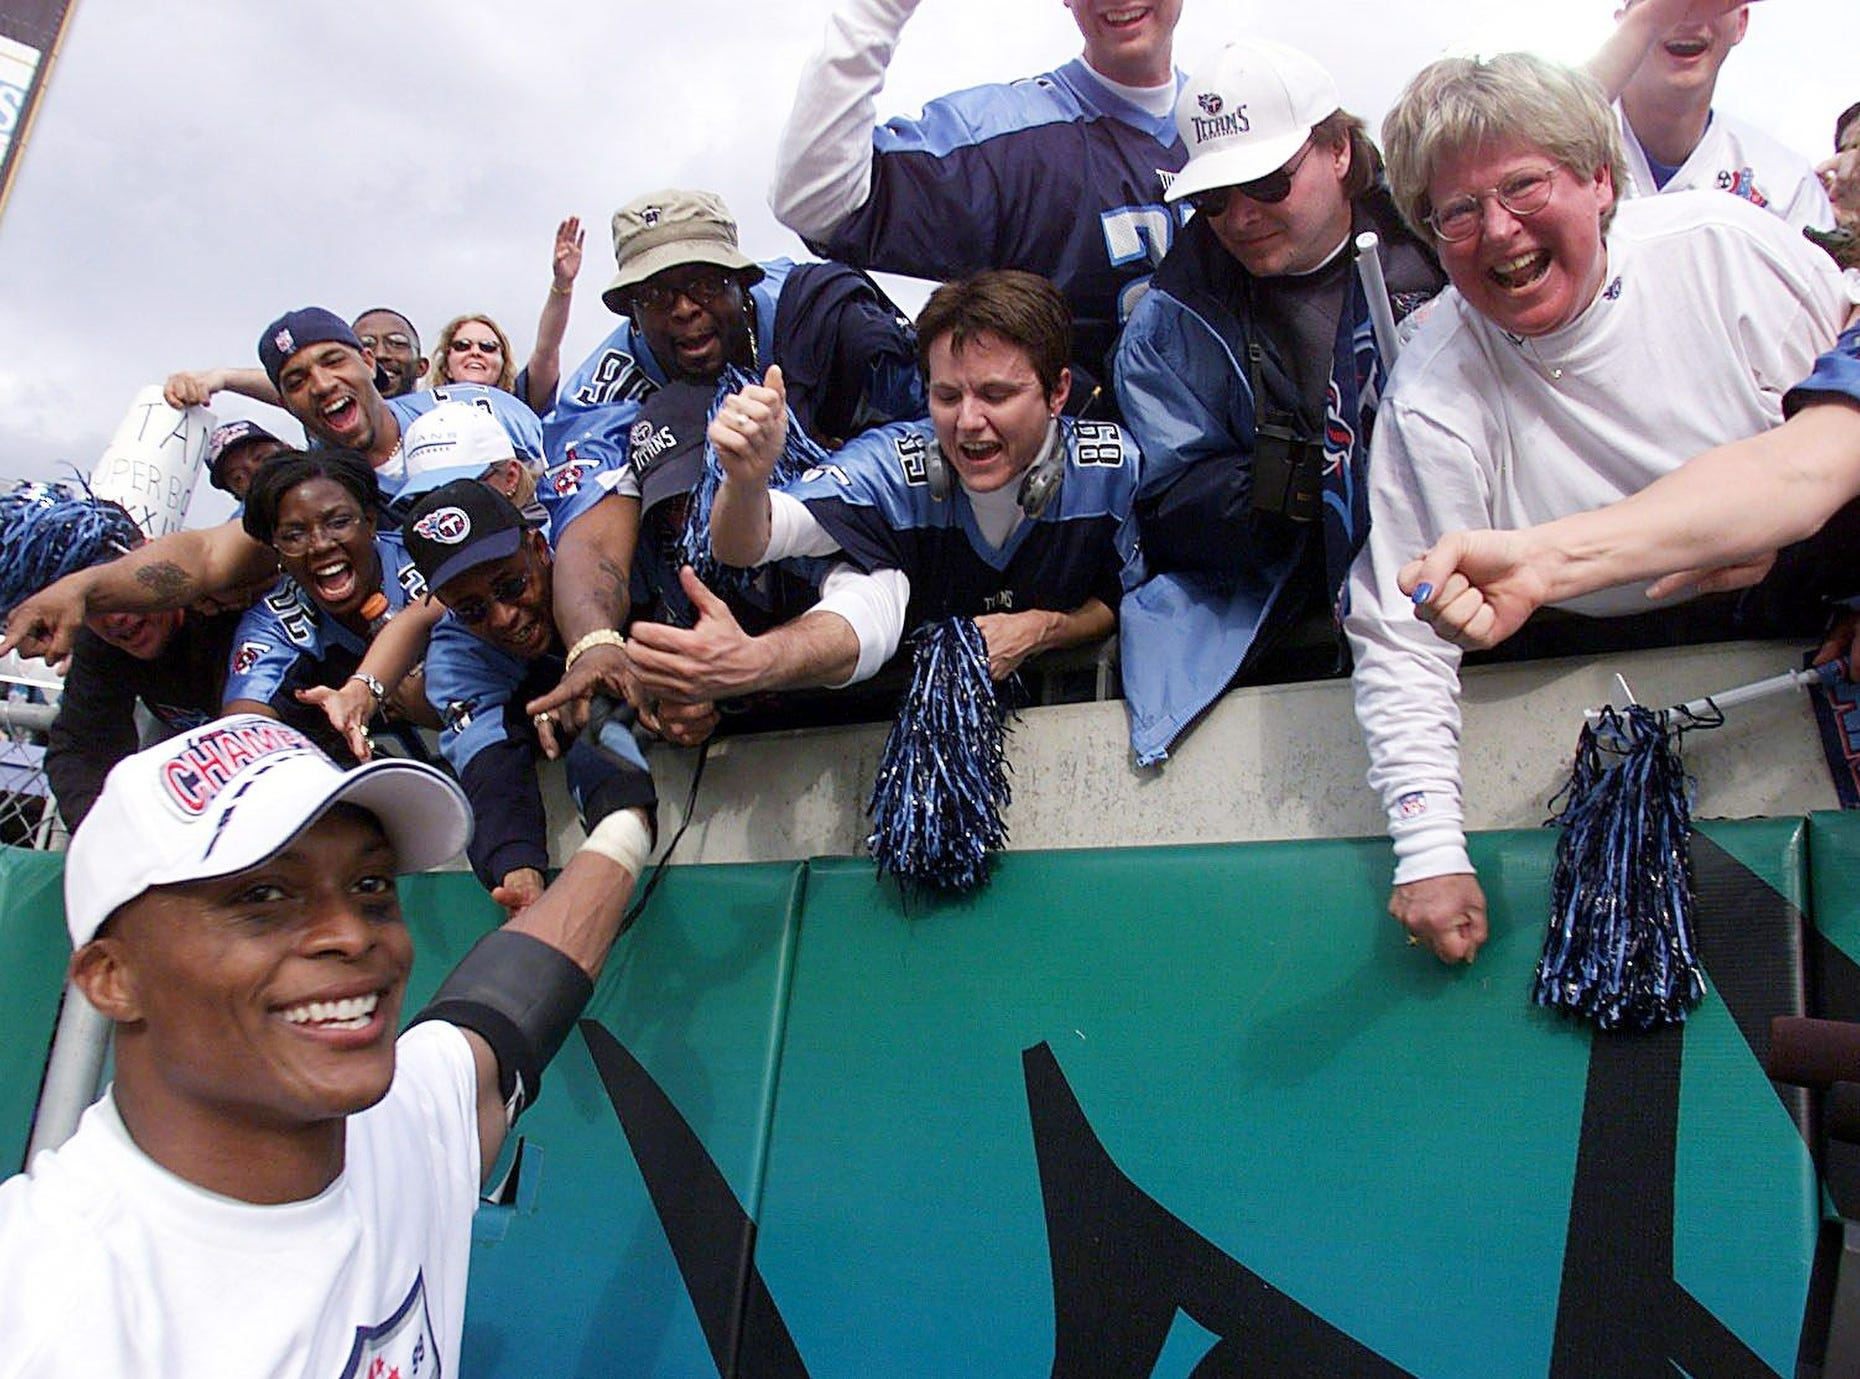 Tennessee Titans running back Eddie George shakes the hands of fans after winning the AFC championship game 33-14 over Jacksonville Jaguars at Alltel Stadium in Jacksonville Jan. 23, 2000.